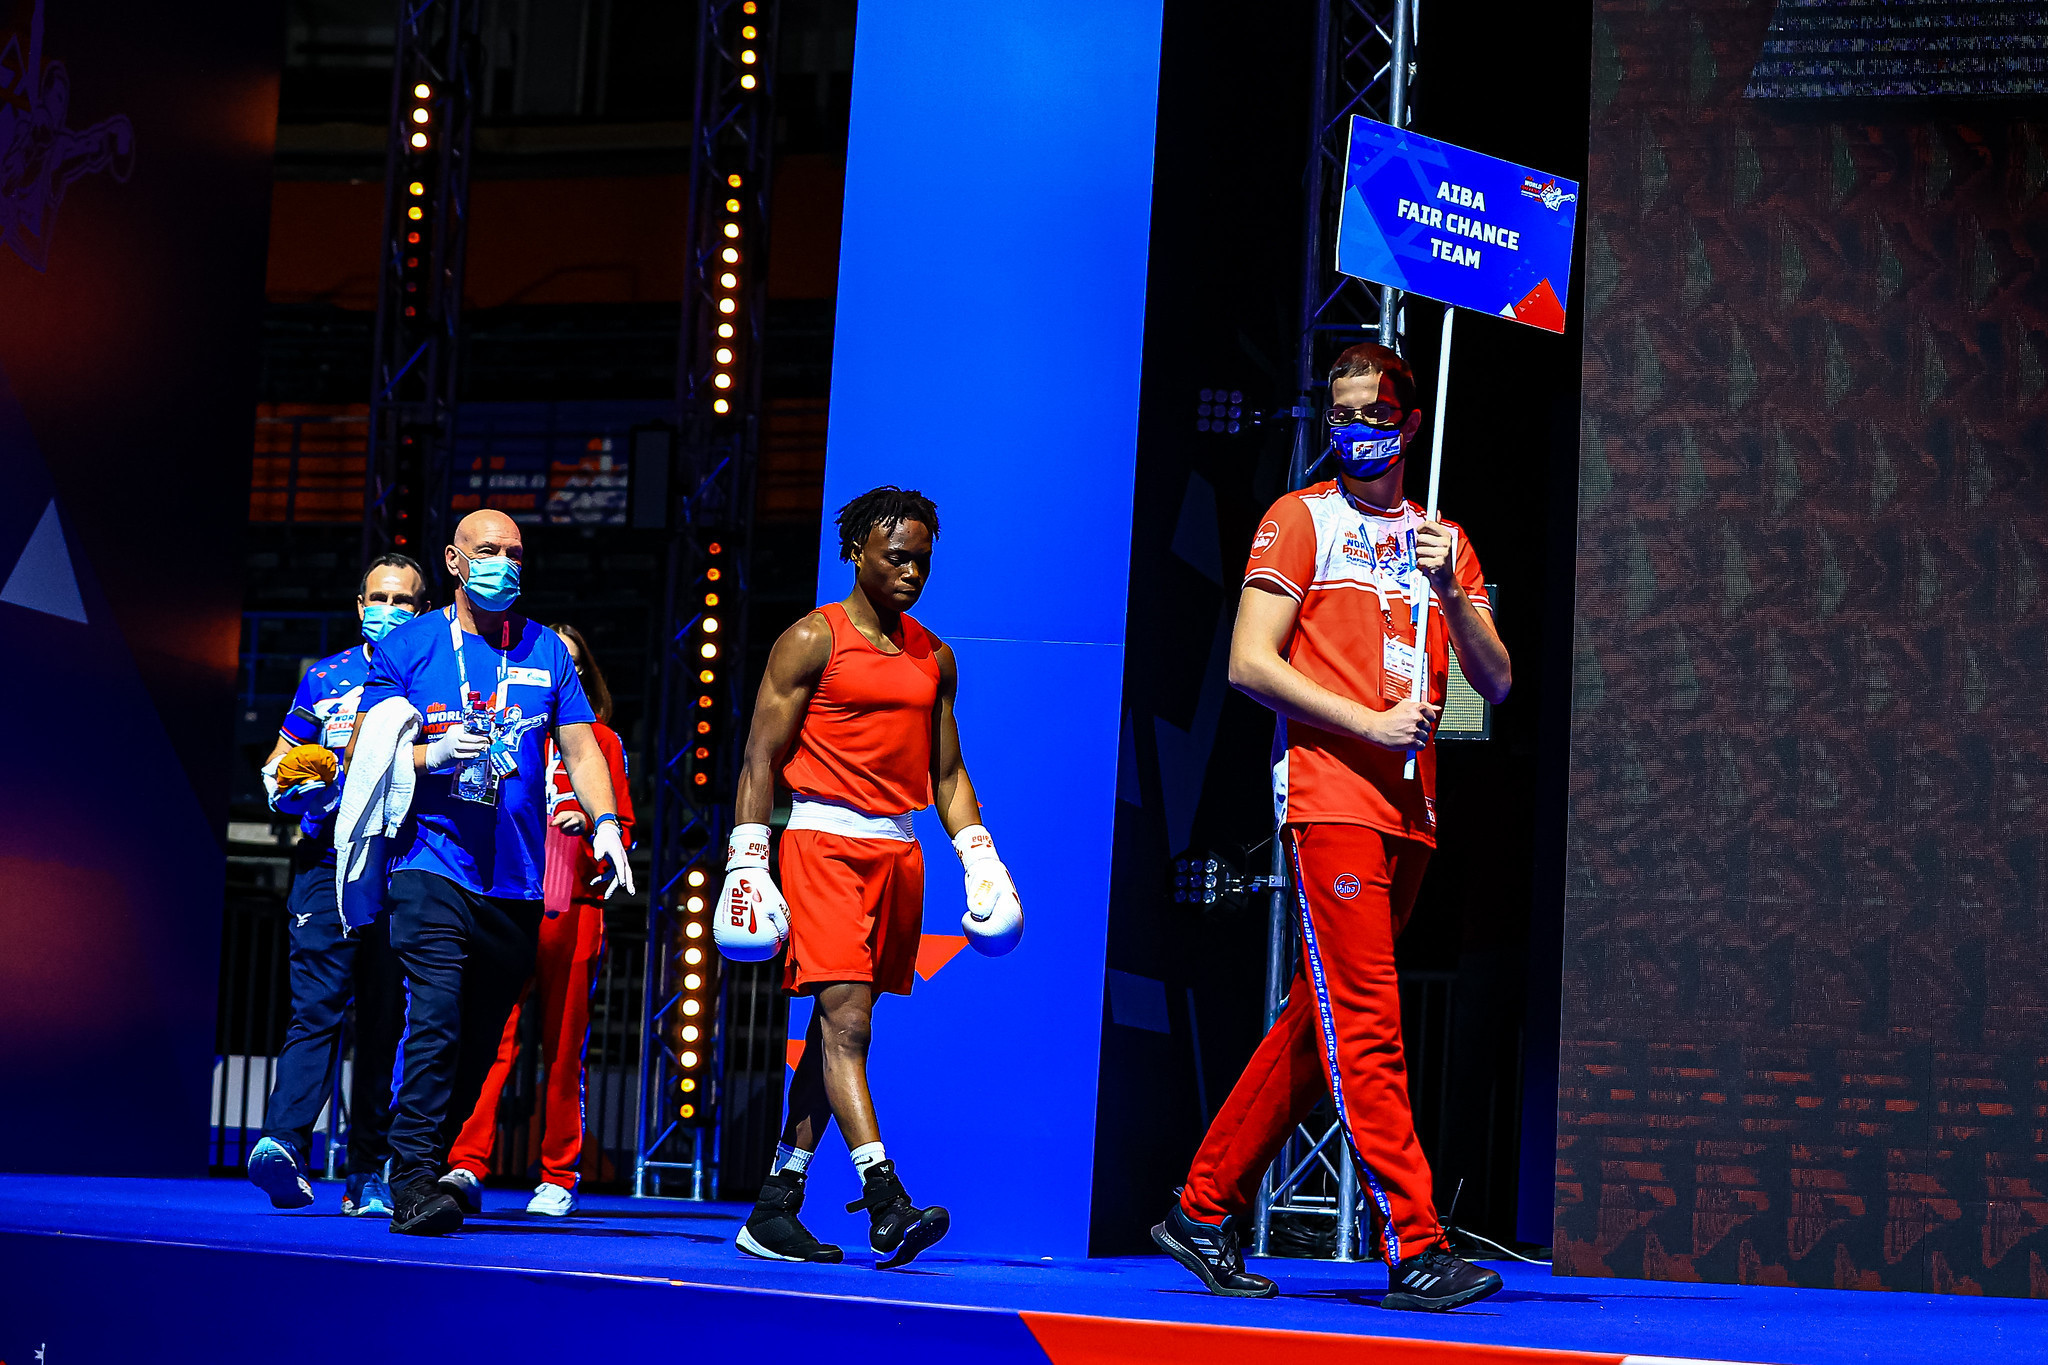 Abdule-Fawaz Aborode was the first refugee winner at the AIBA Men's World Boxing Championships ©AIBA